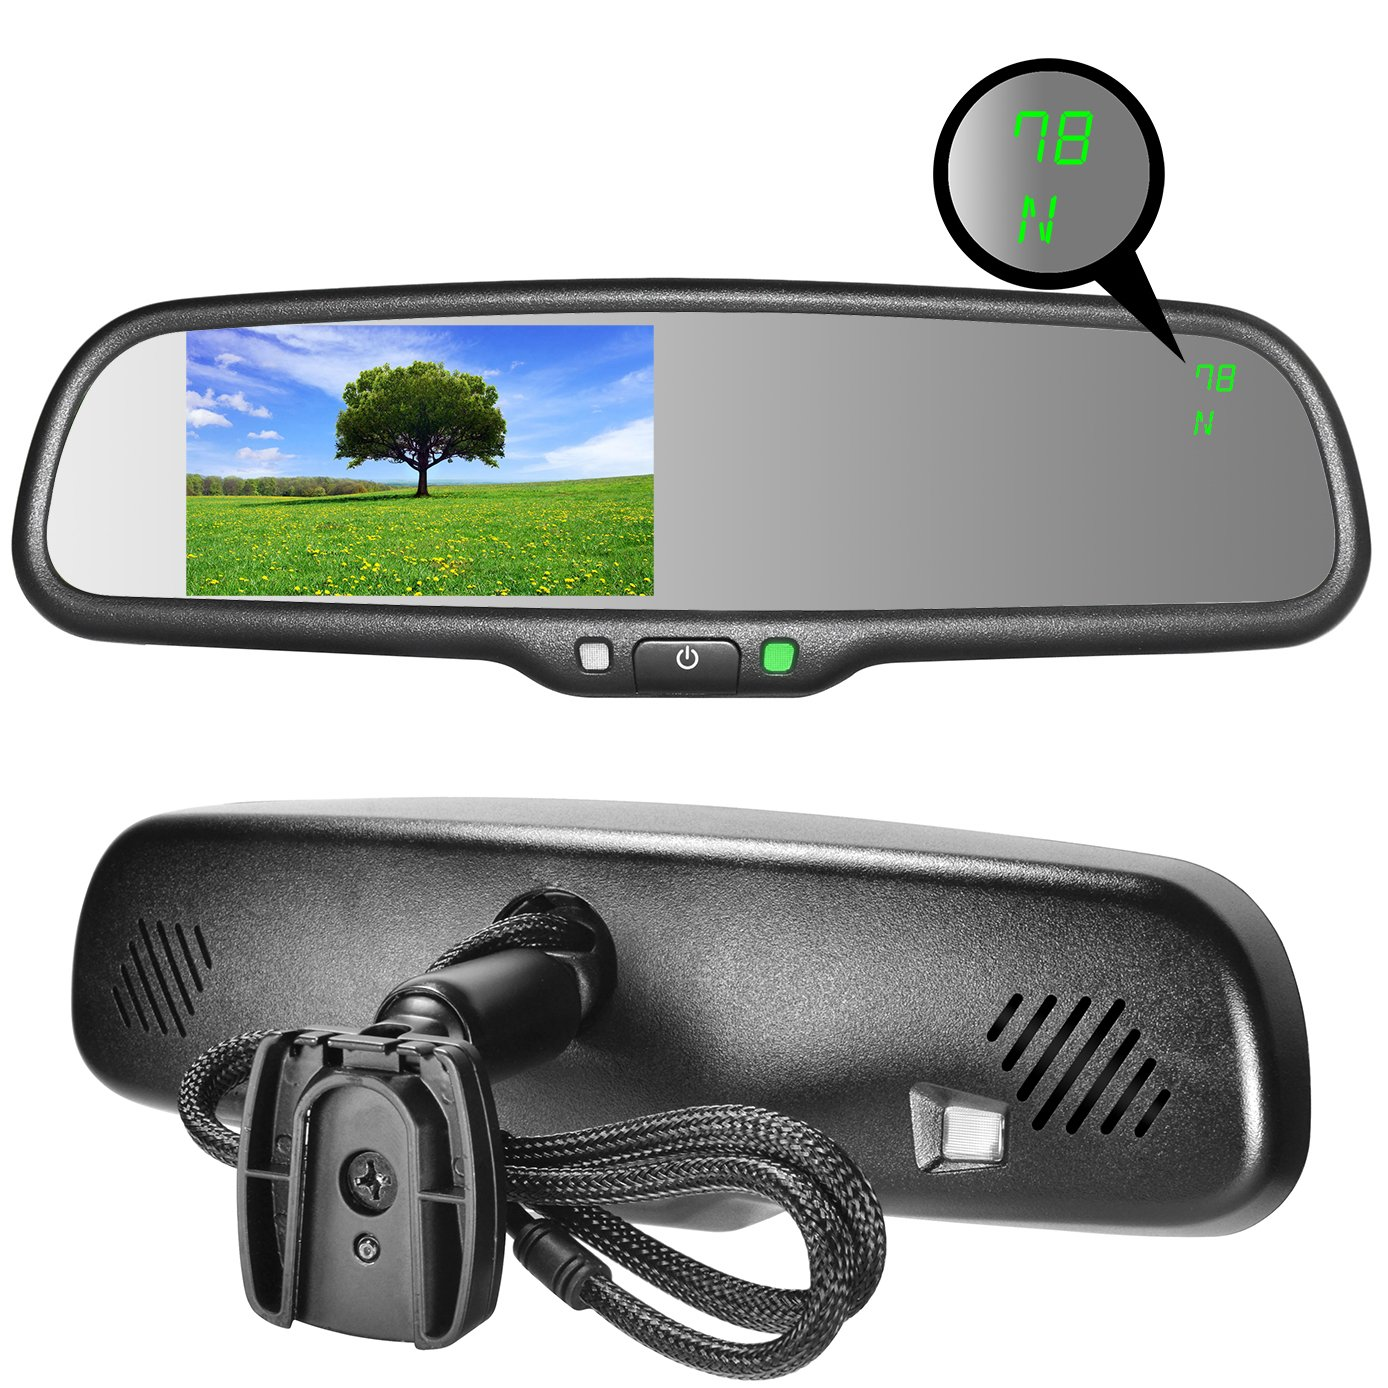 Master Tailgaters OEM Rear View Mirror with 4.3'' Auto Adjusting Brightness LCD + Compass & Temperature - Universal Fit by Master Tailgaters